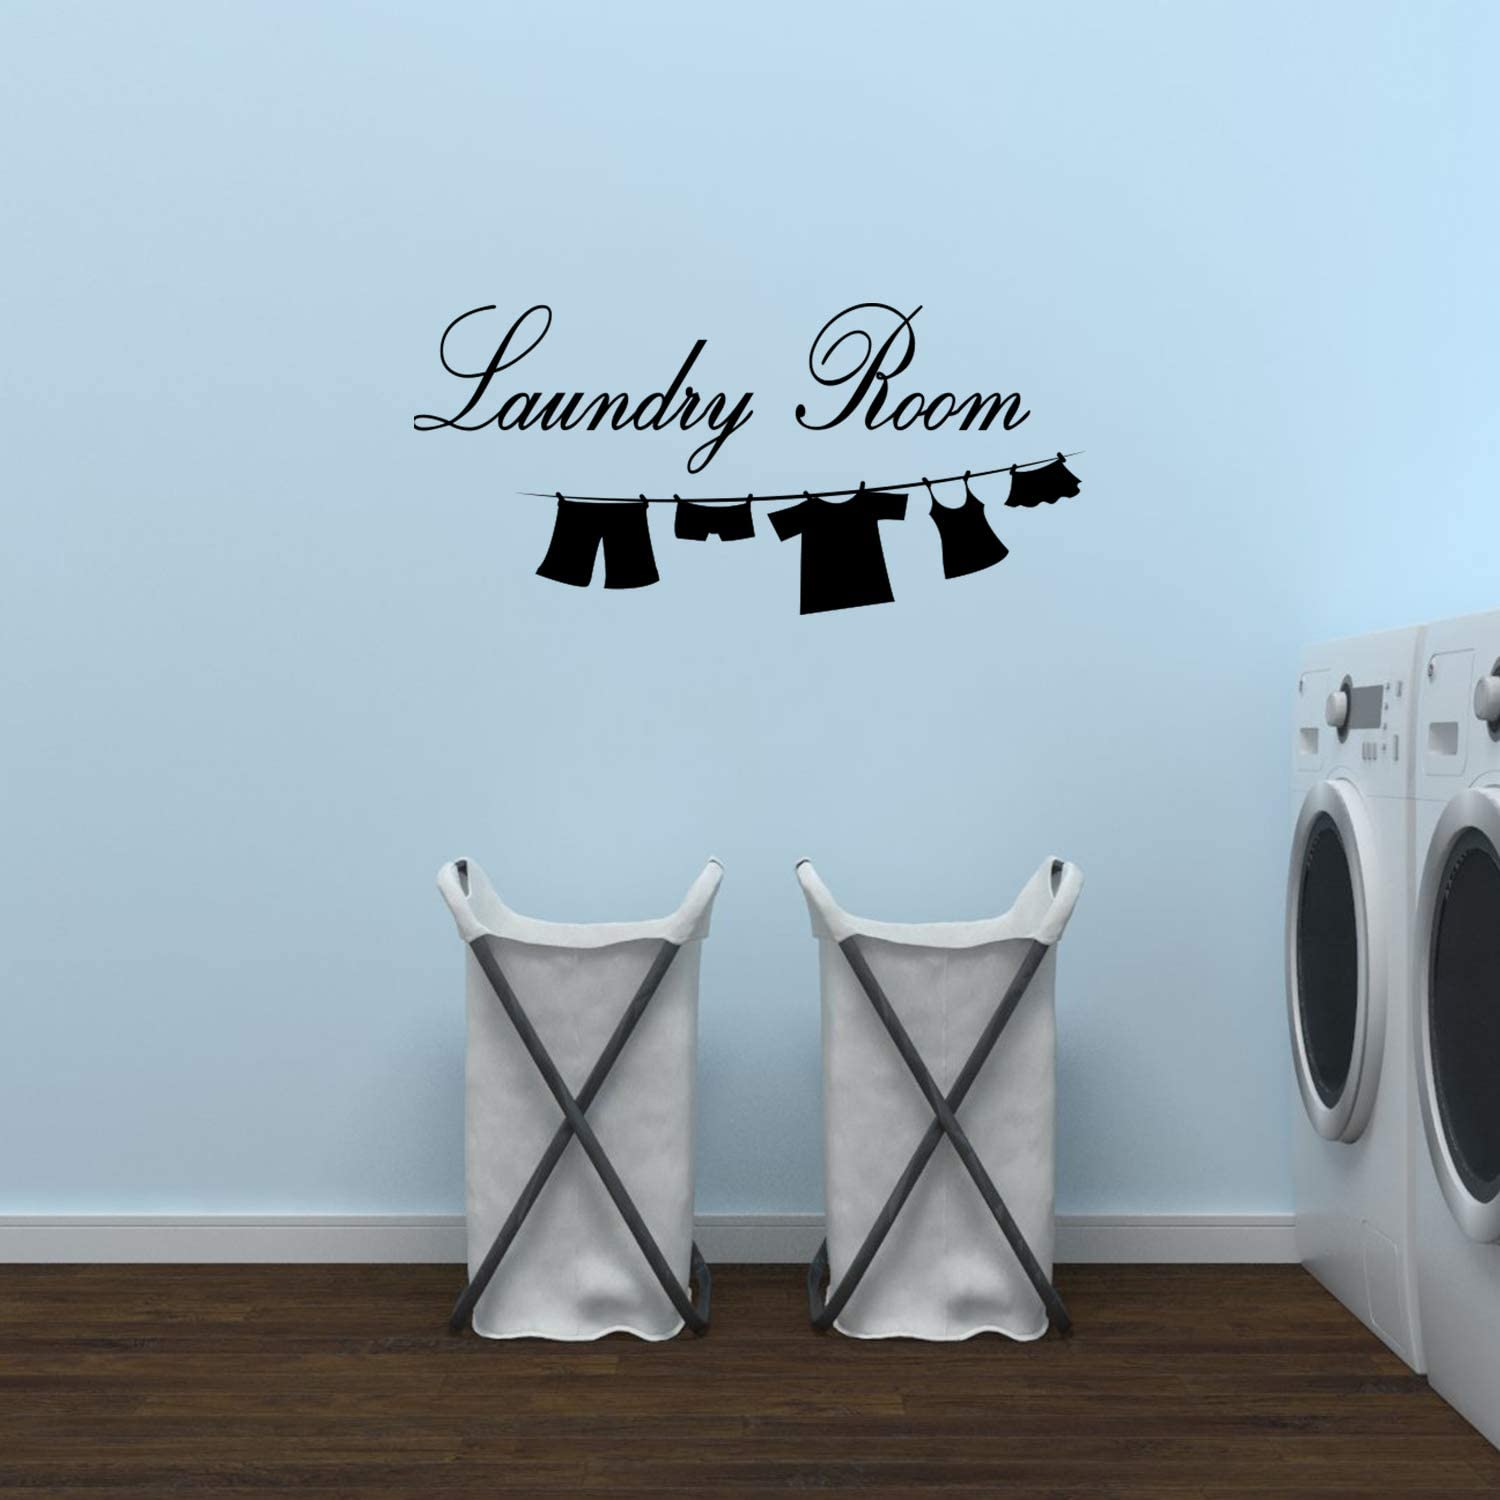 Wall Decal Sticker Vinyl Art Lettering Laundry Room wall quotes